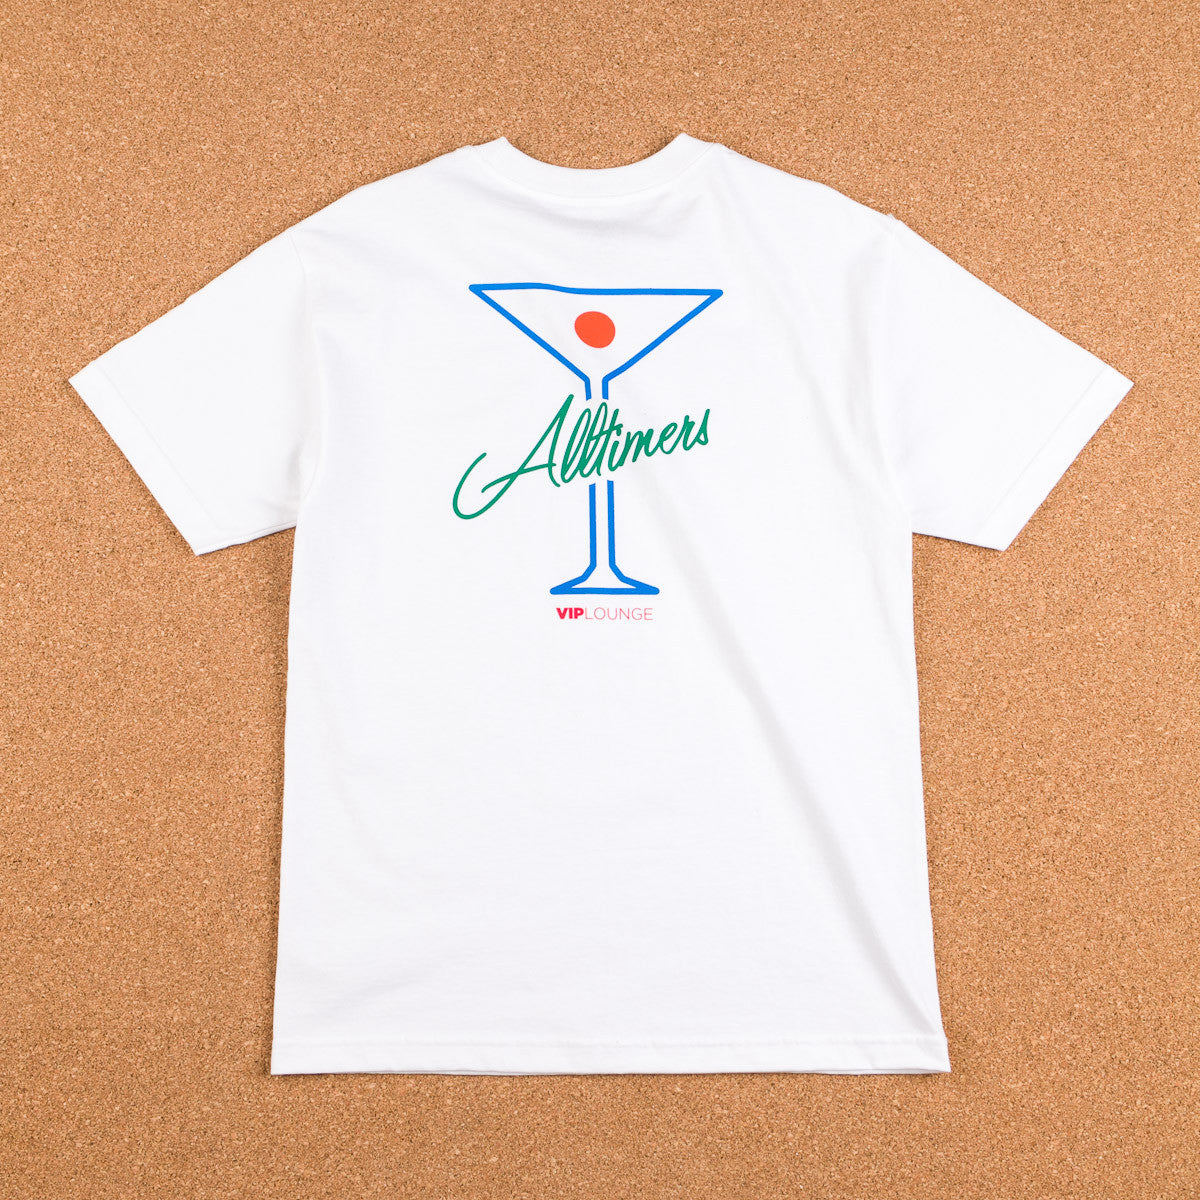 Alltimers Logo T-Shirt - White / Multi